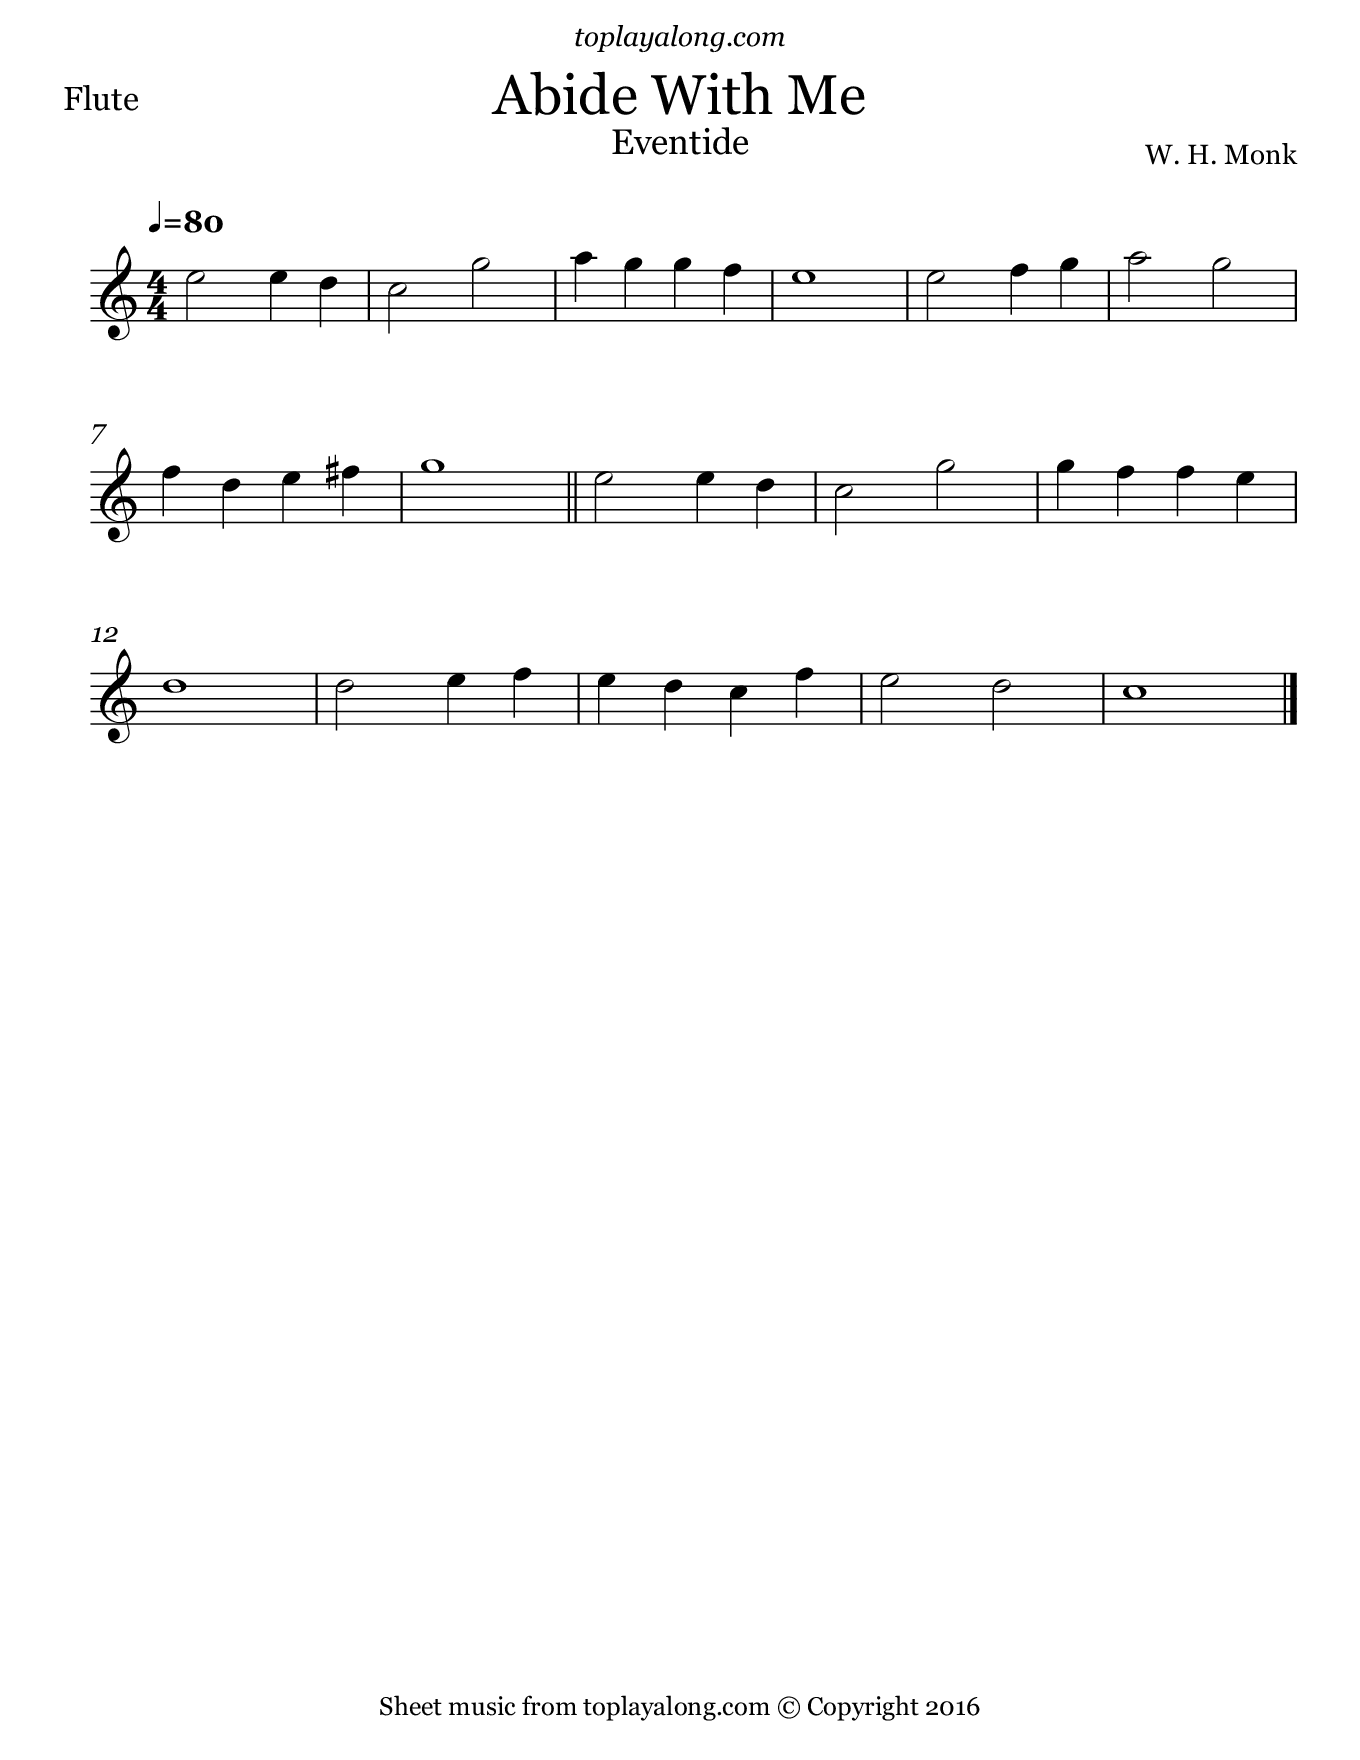 Abide With Me (Eventide). Sheet music for Flute, page 1.